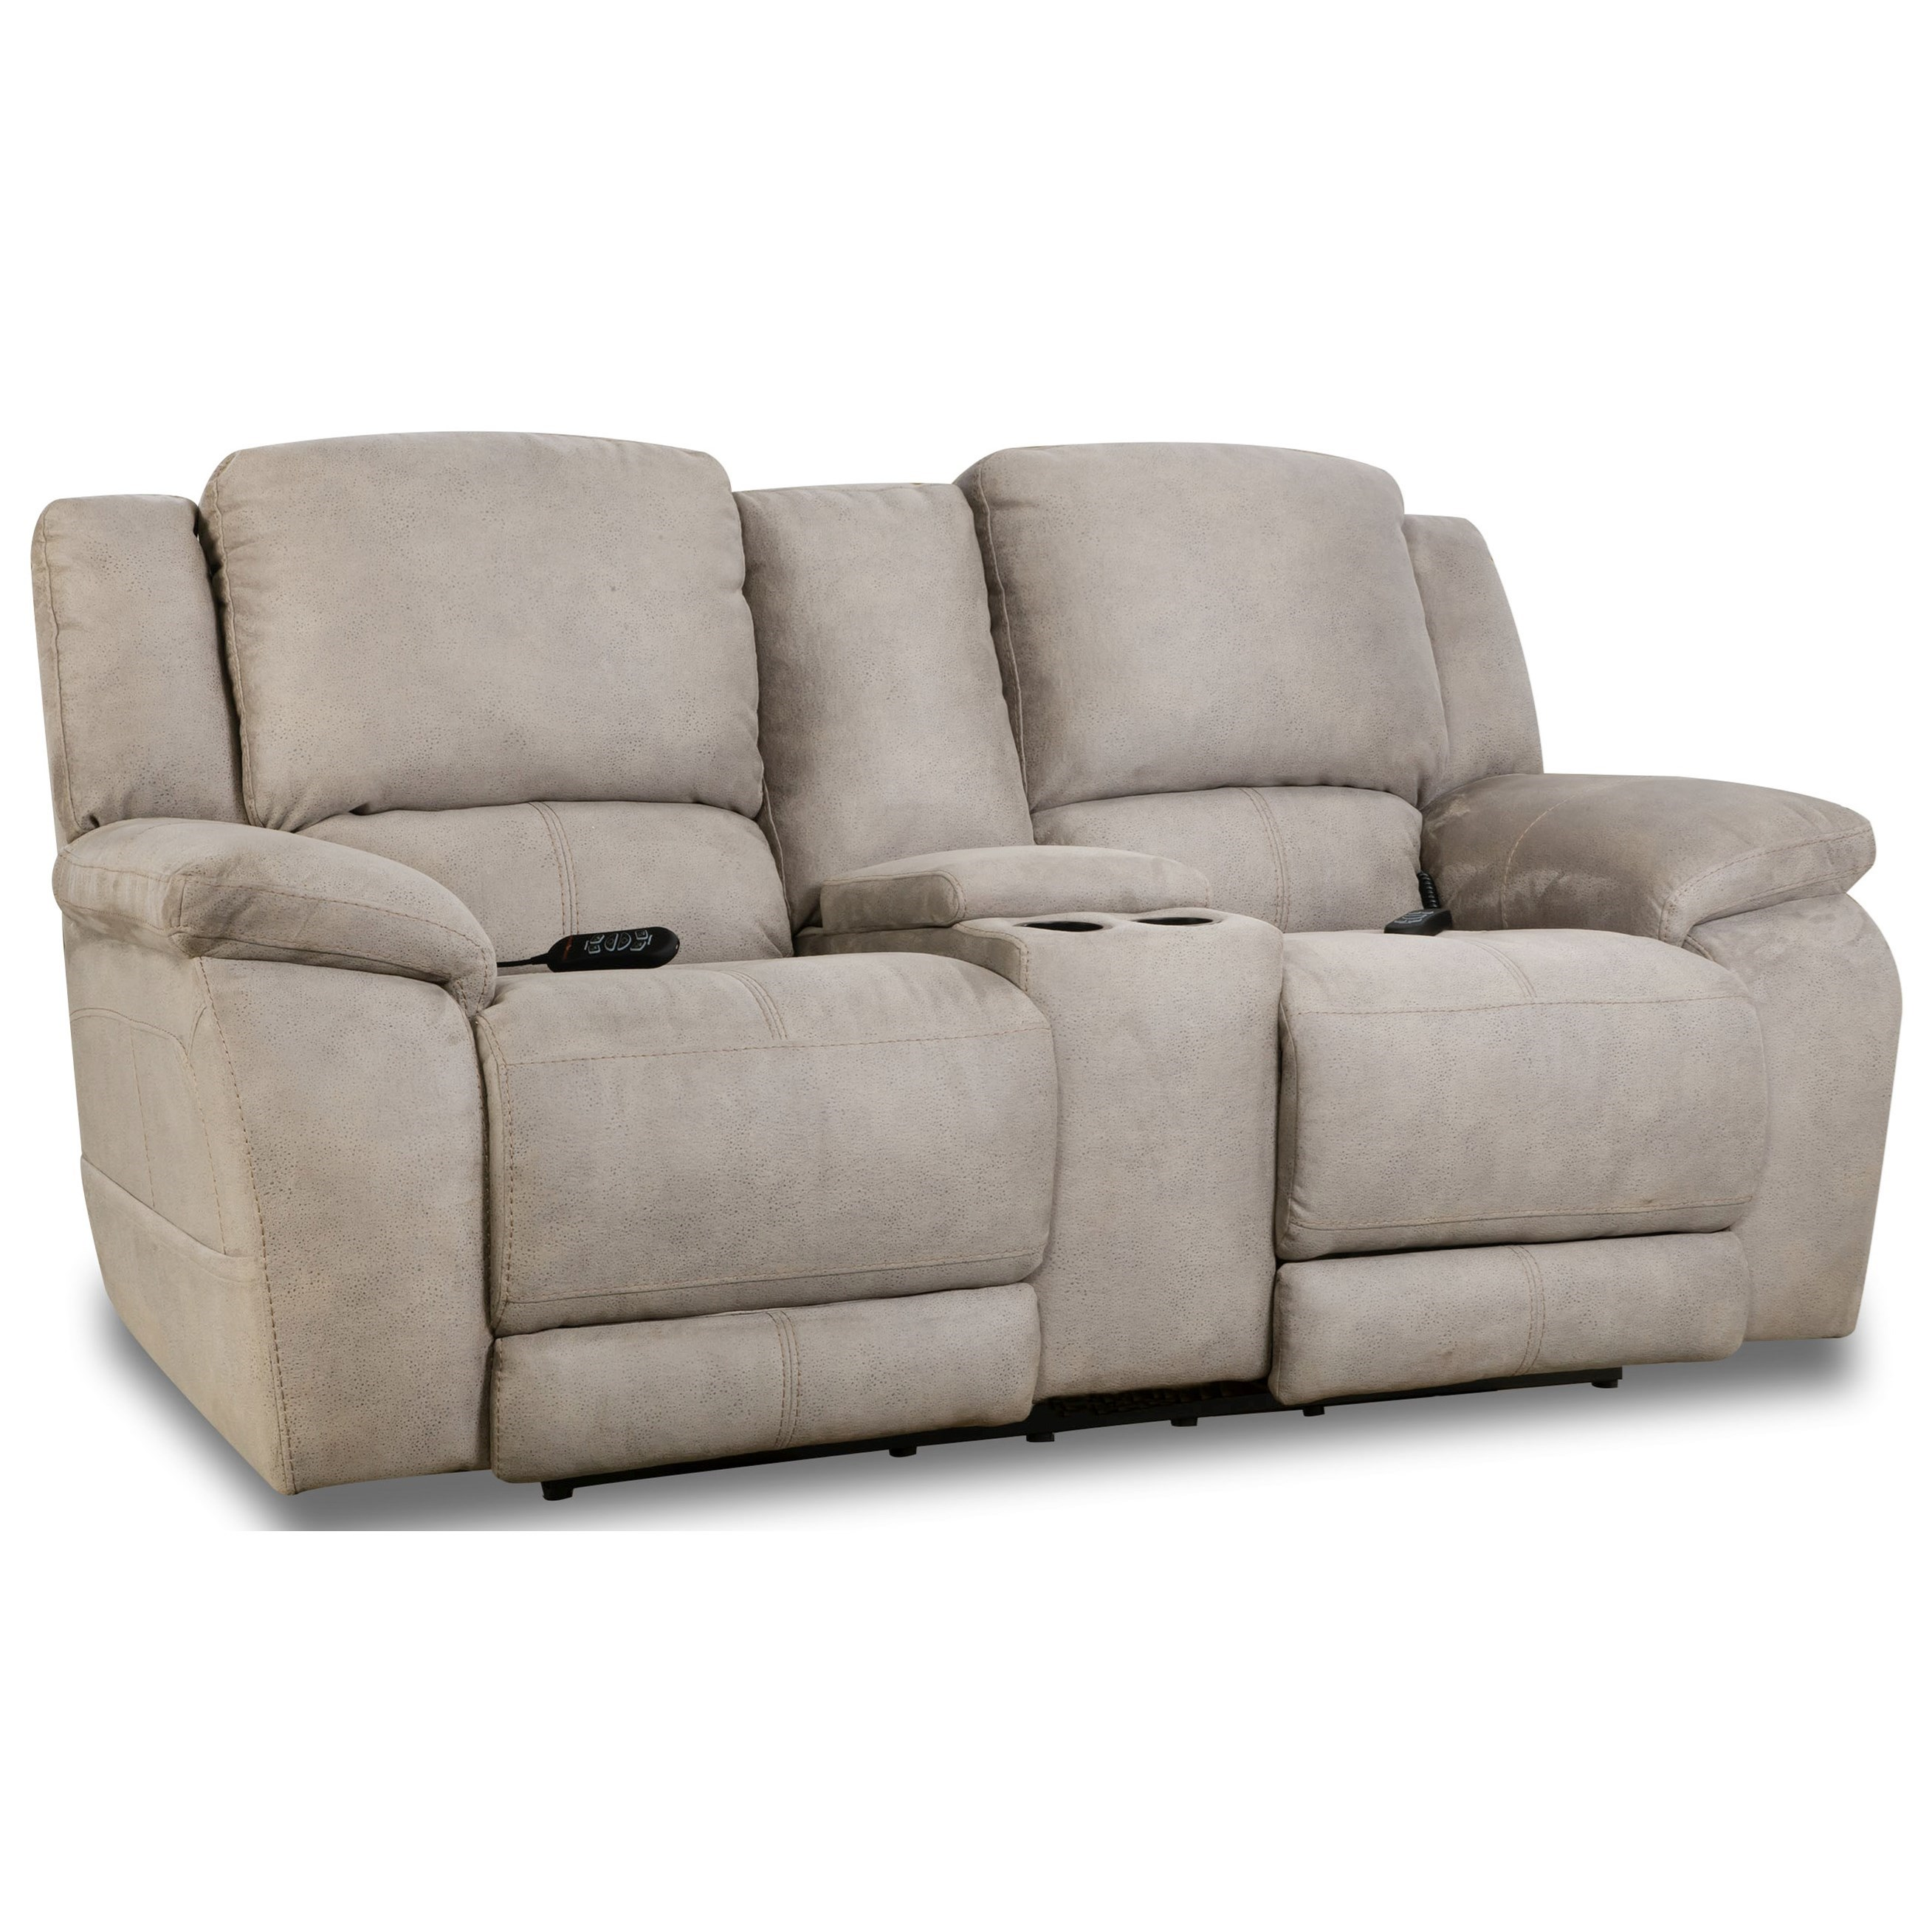 Explorer Power Console Loveseat by HomeStretch at HomeWorld Furniture